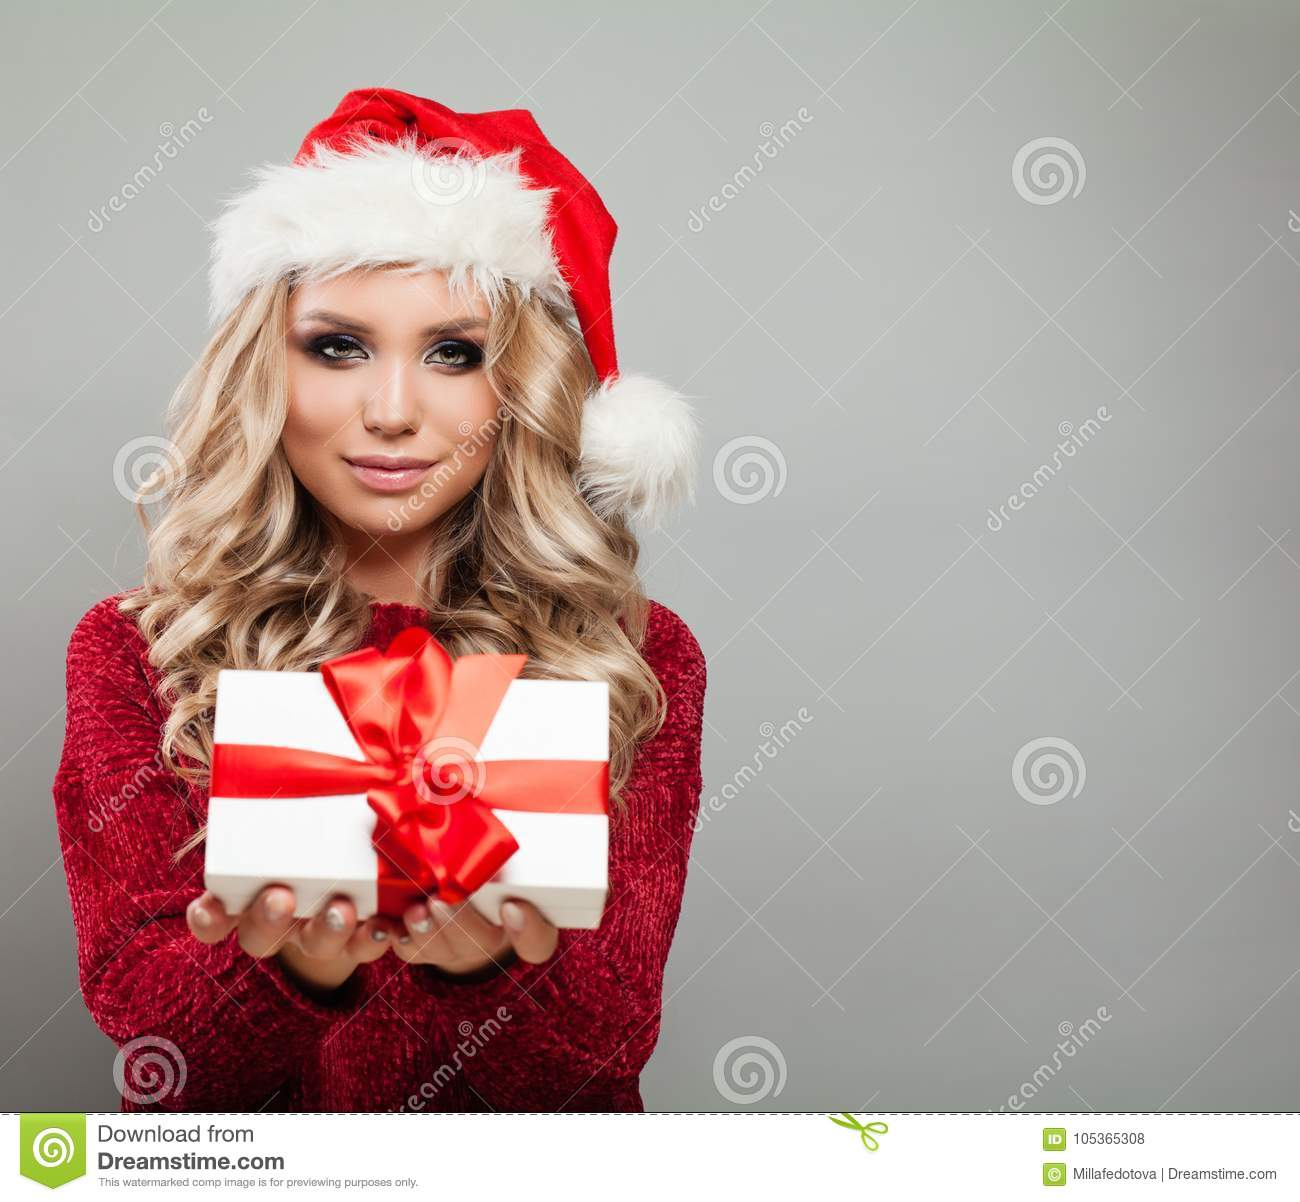 14e2a6f2c0a3b Pretty Christmas Model Holding White Christmas Gift Box with Red Ribbon.  Cute Woman in Santa Hat on Gray Background with Copy space